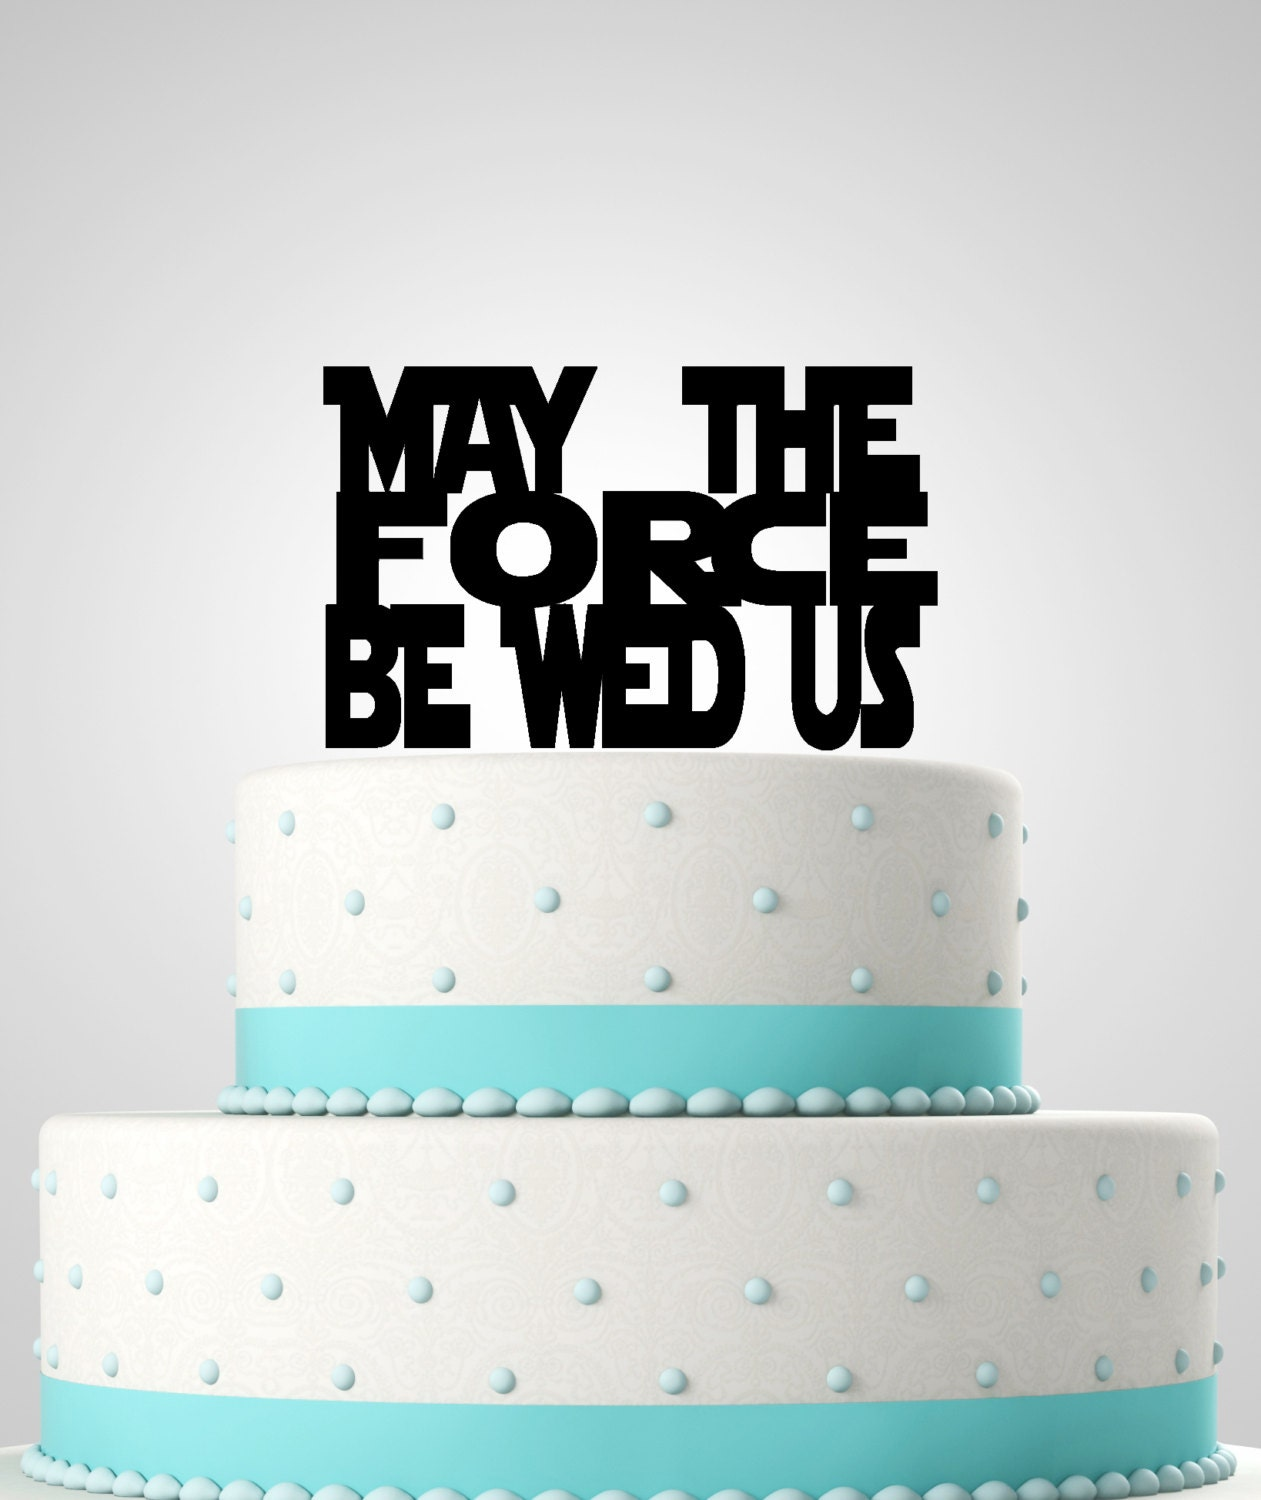 Star Wars Inspired Wedding Cake Topper. May the force be wed